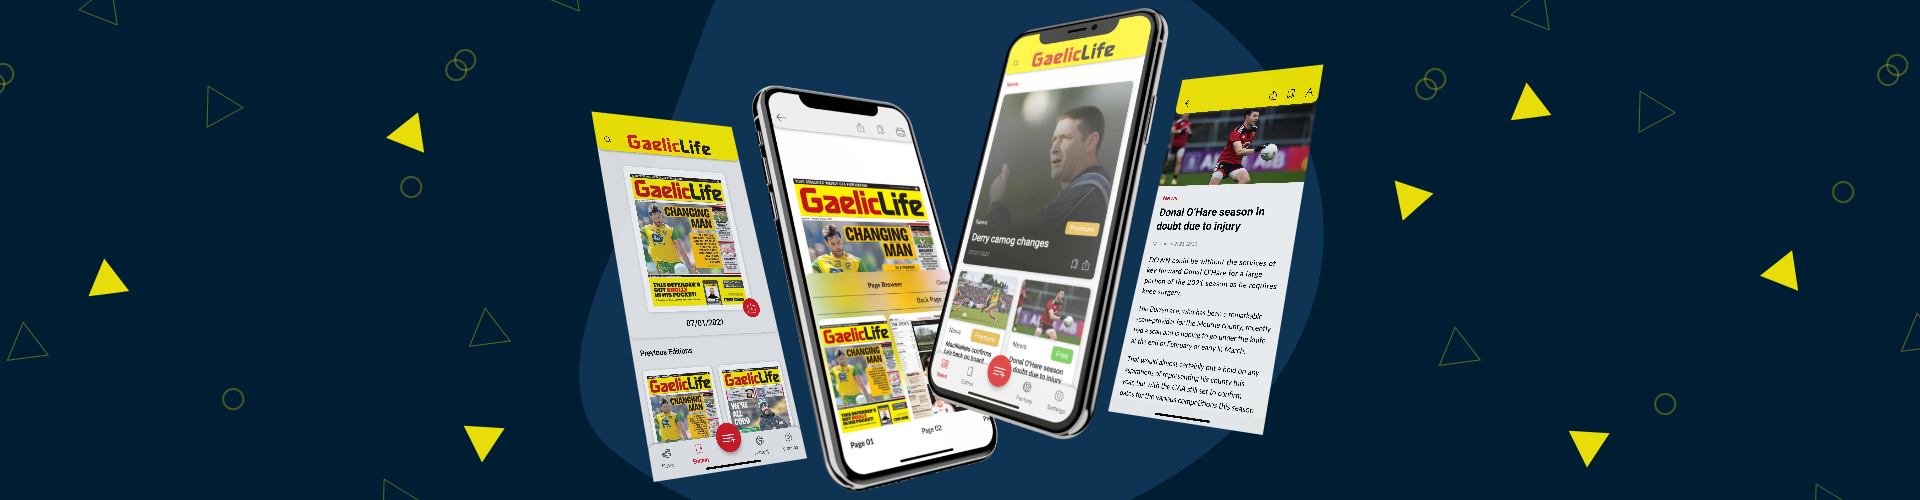 PageSuite Launches New 2 in 1 App for Gaelic Life